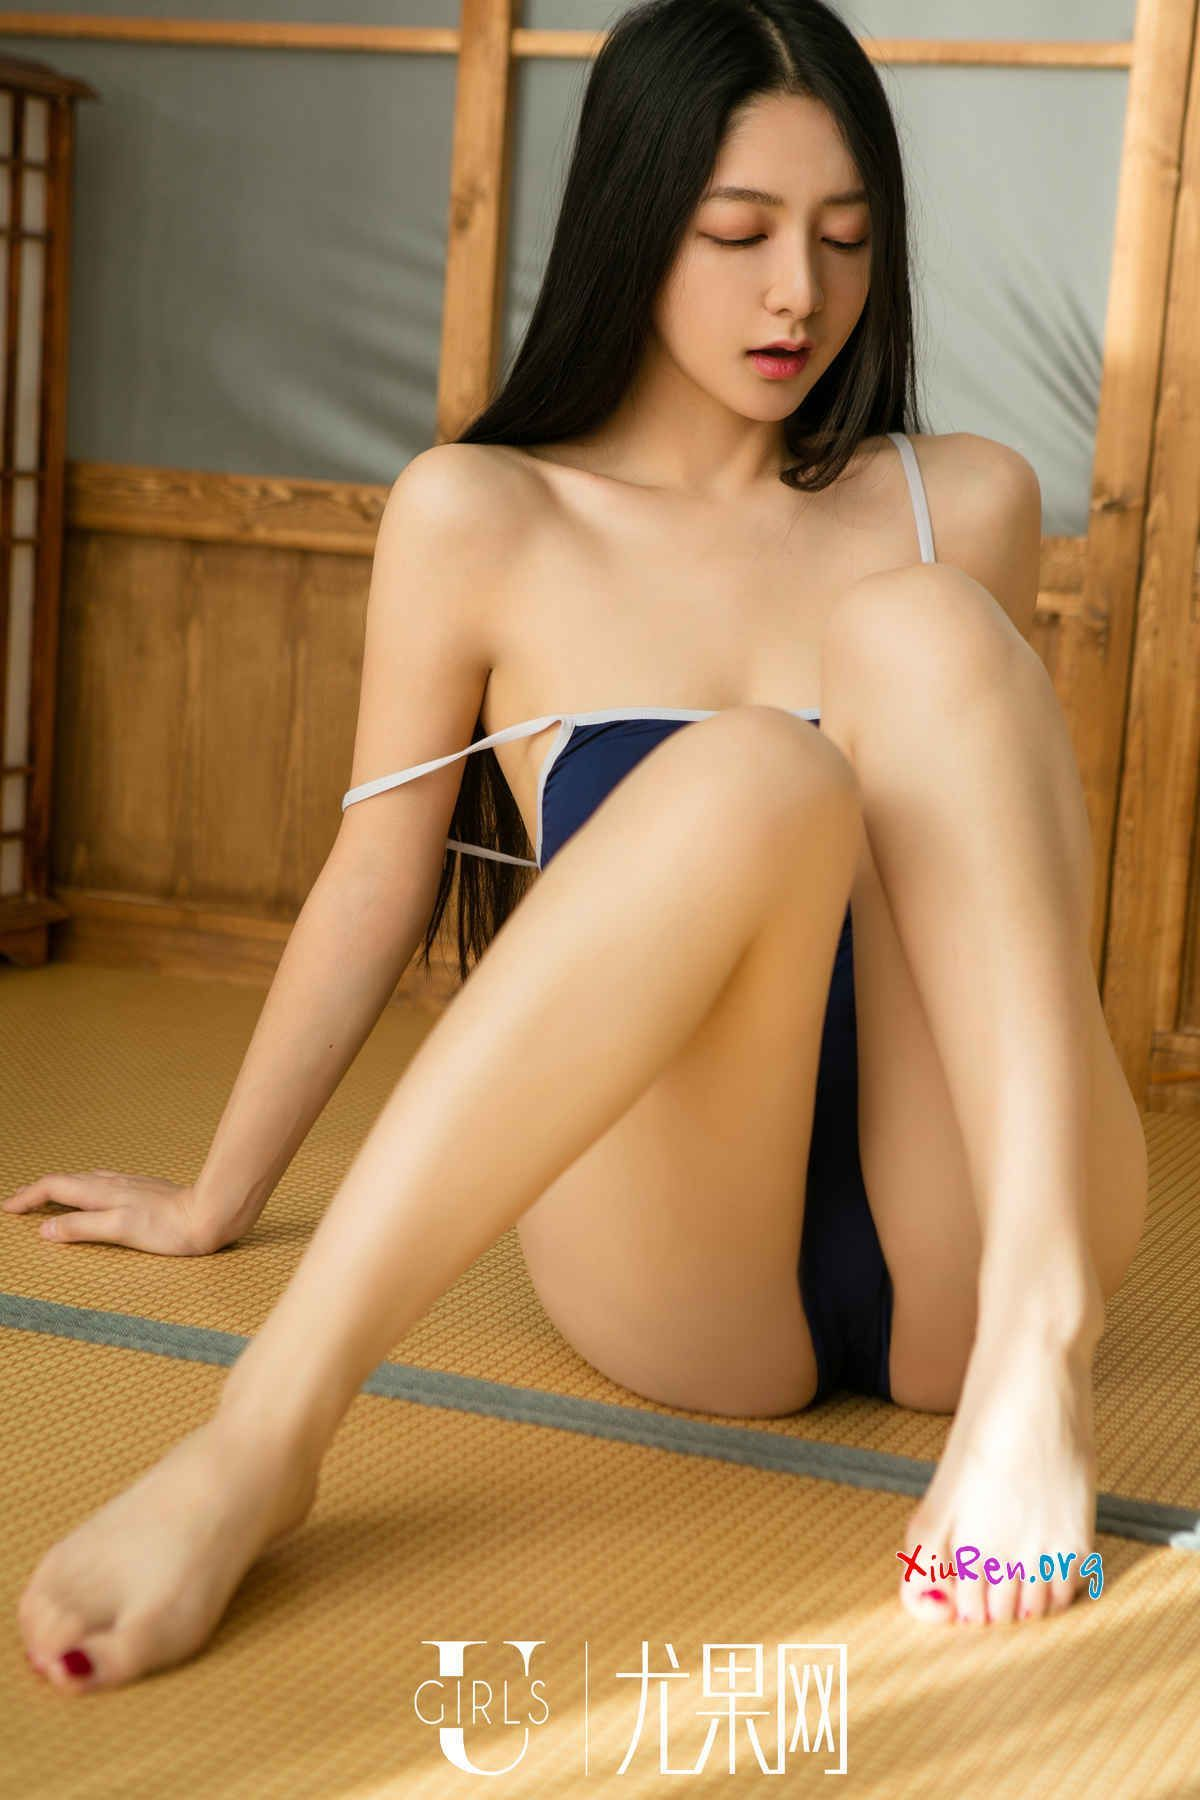 New Girl Asian Model Porn - Beautiful asian model Porno new pictures FREE.